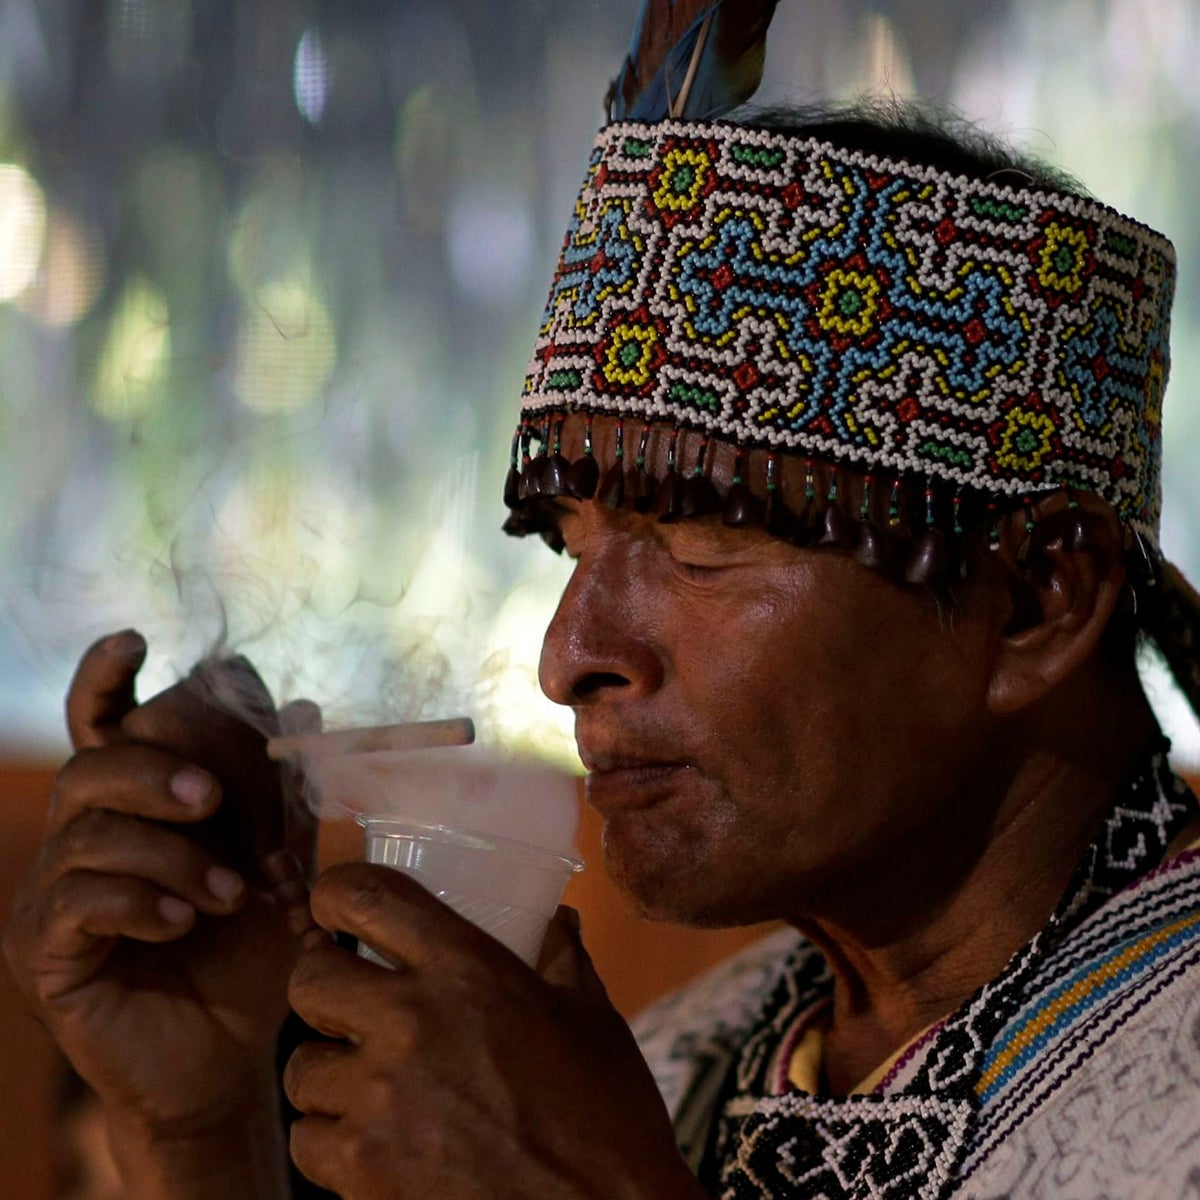 In this May 5, 2018 photo, Shaman Pablo Flores prepares to drink ayahuasca during a session in Nuevo Egipto, a remote village in the Peruvian Amazon.